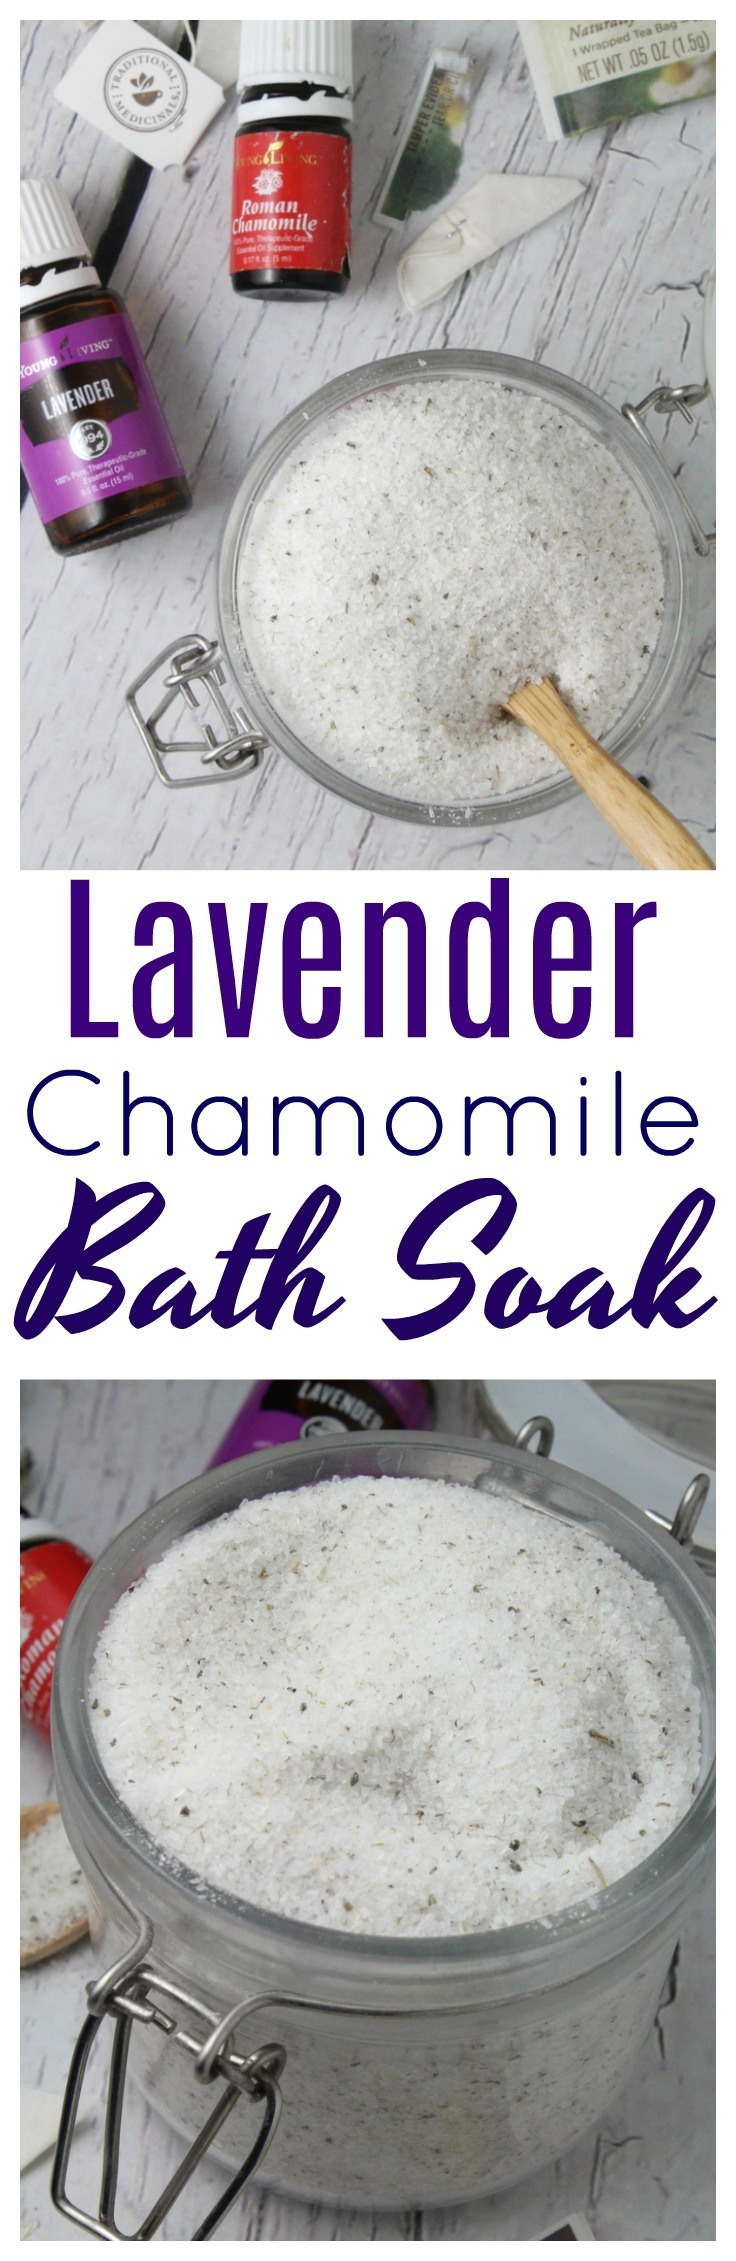 This Relaxing Lavender Chamomile Herbal Bath Soak is incredibly easy to make and great to gift! #handmade | #gift | #DIY